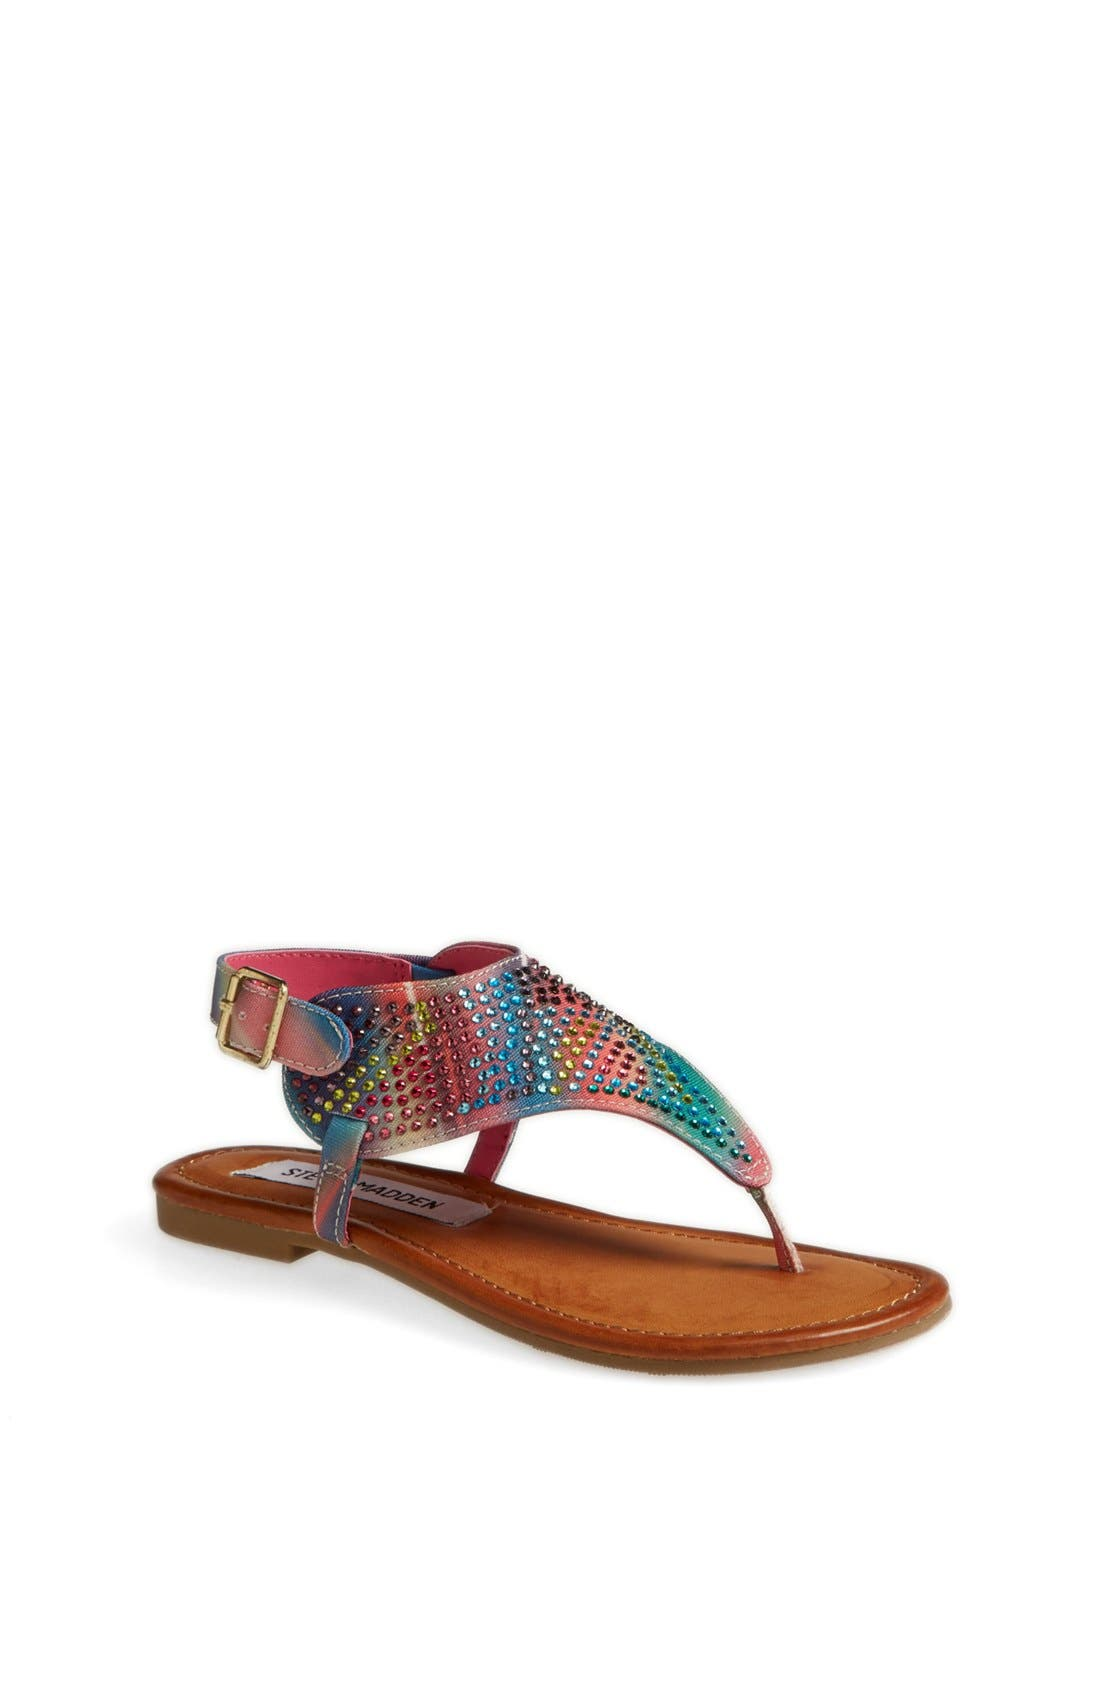 Main Image - Steve Madden 'Bizee' Sandal (Toddler, Little Kid & Big Kid)